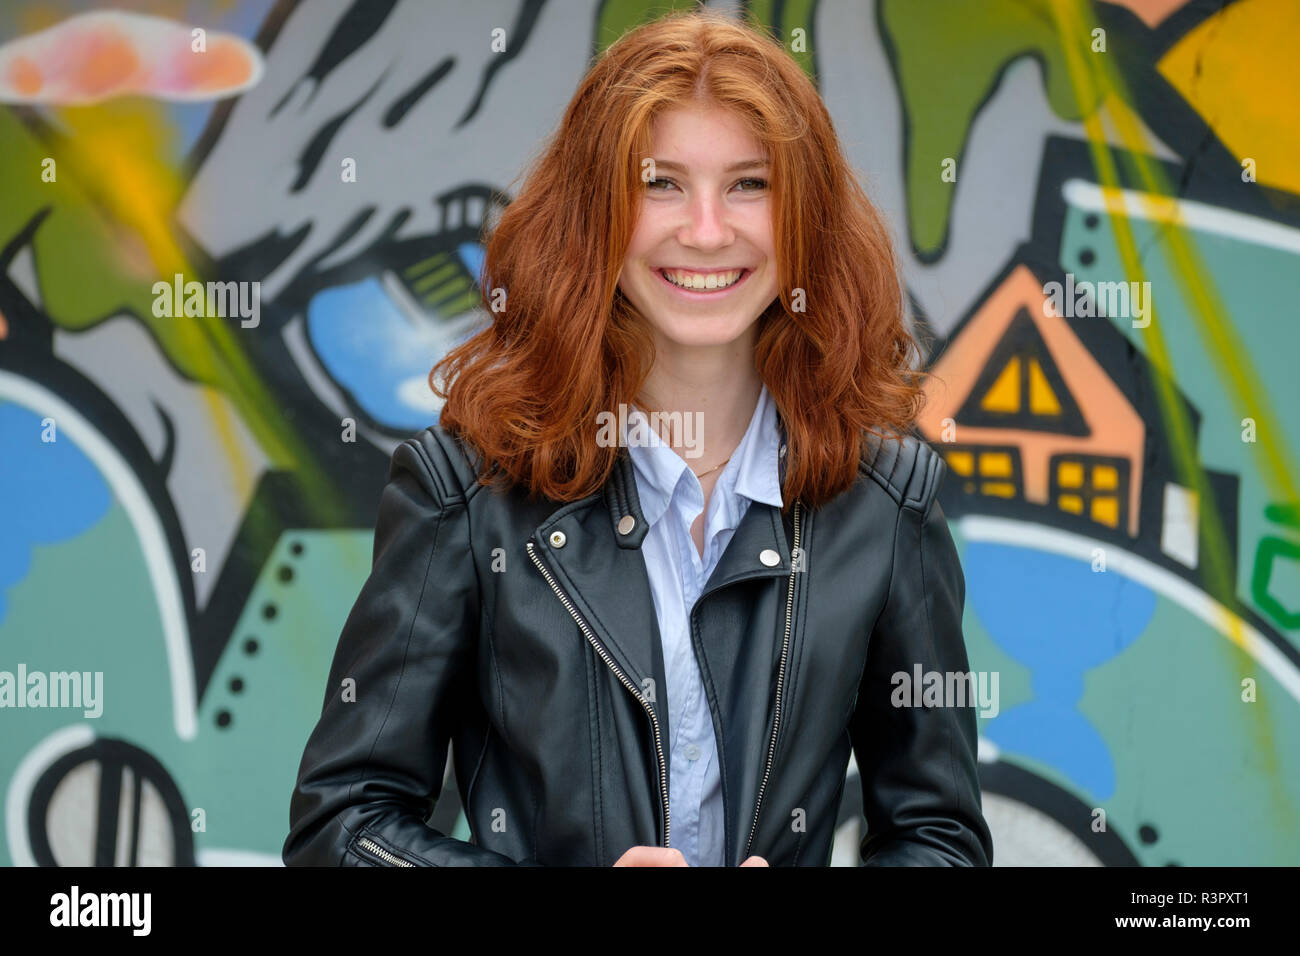 Italy, Finale Ligure, portrait of laughing redheaded teenage girl in front of  mural - Stock Image